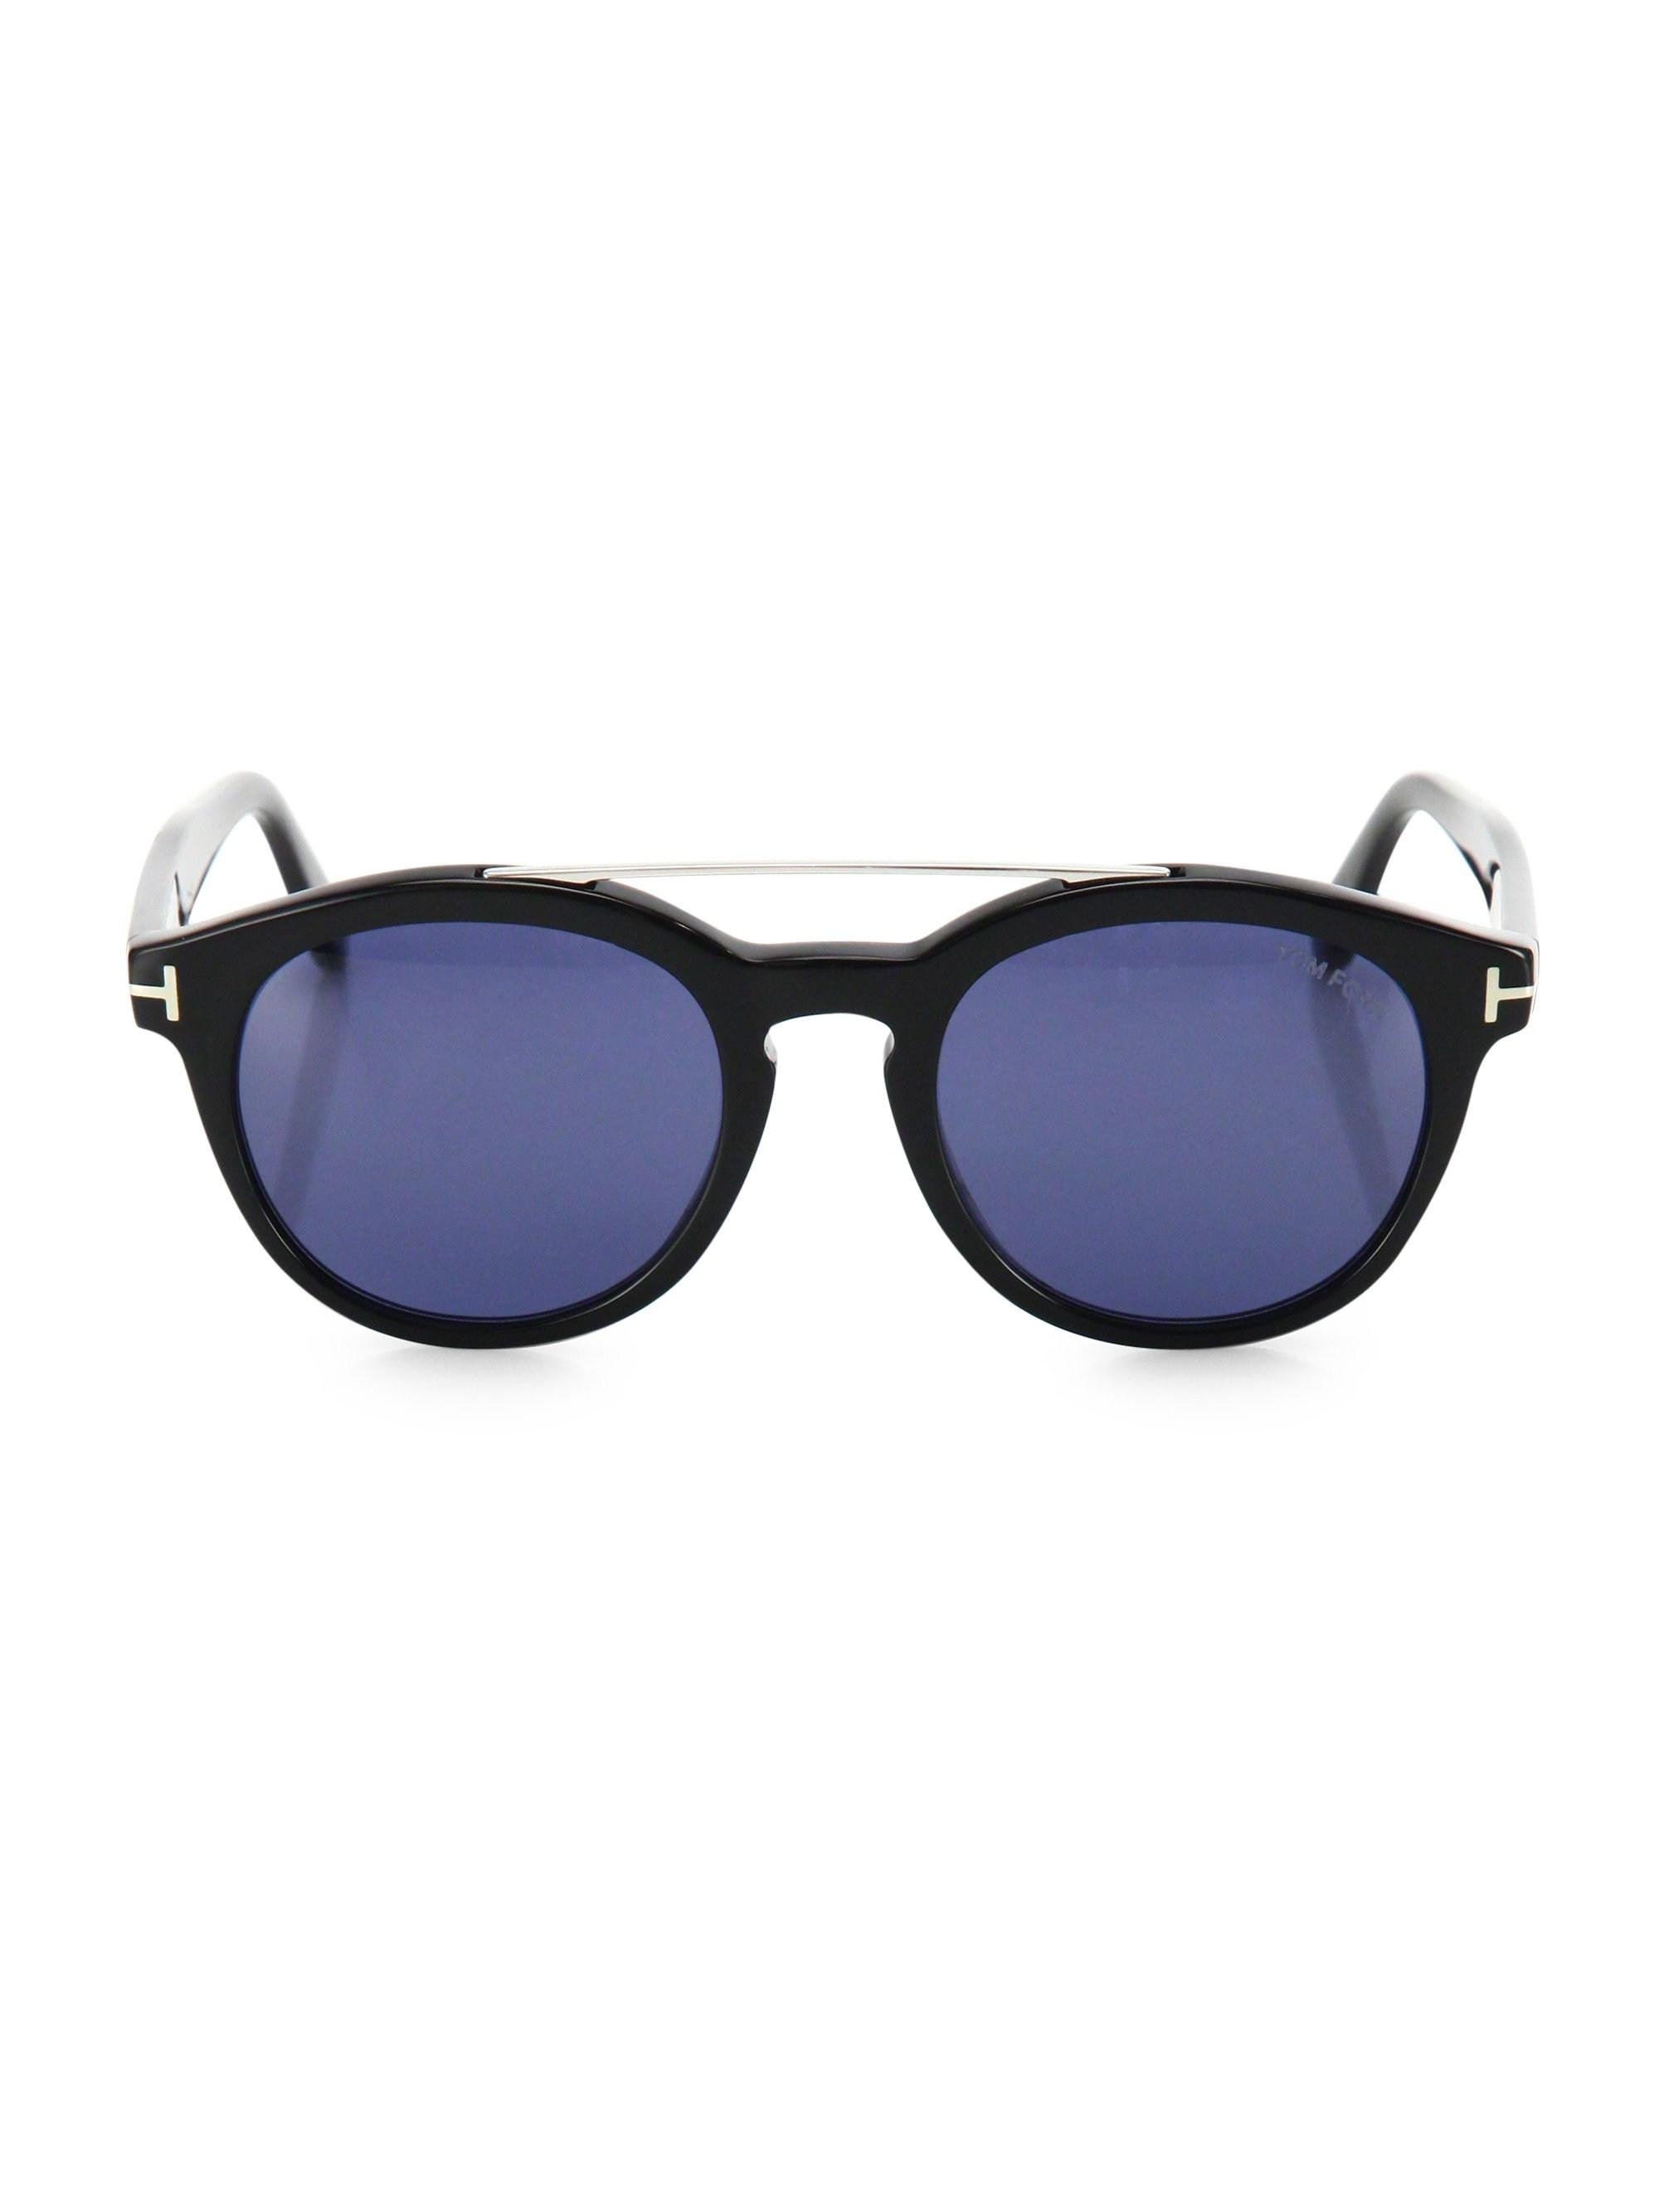 4c3b1c2ae2 Lyst - Tom Ford Newman 53mm Round Sunglasses in Blue for Men